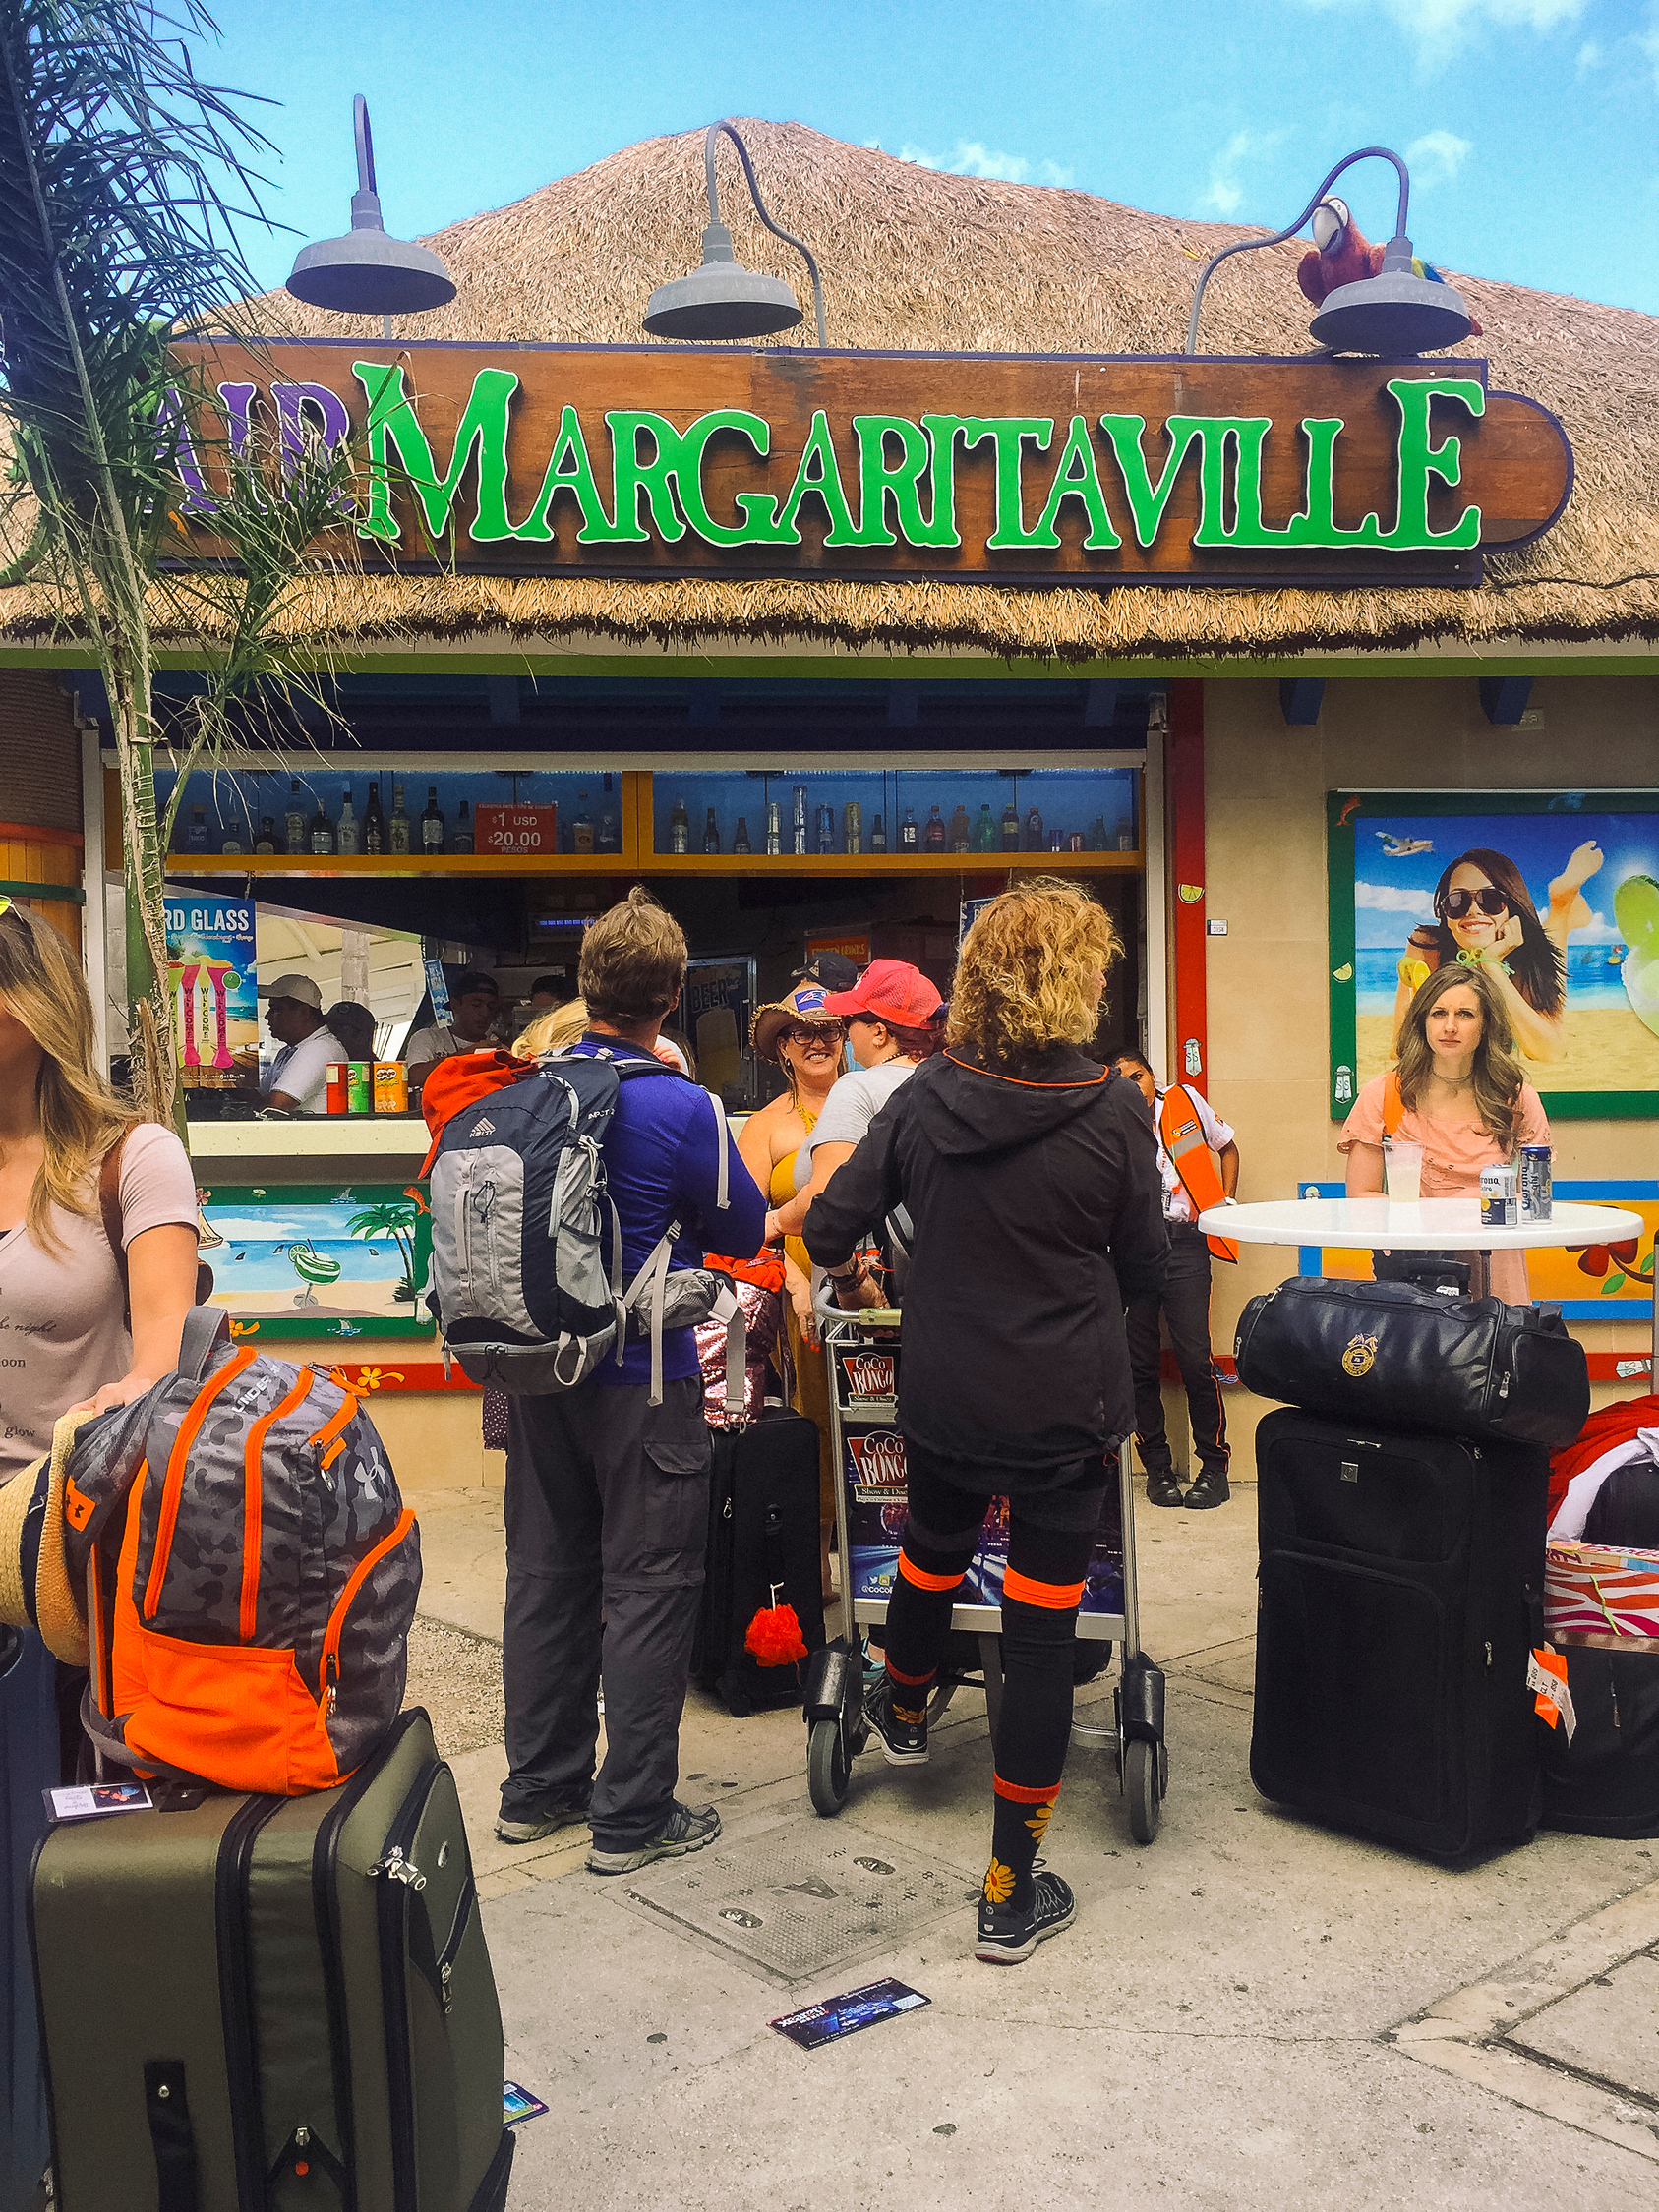 Margaritaville at the Cancun airport is to the right of the exit and on the way to the ADO bus stop.